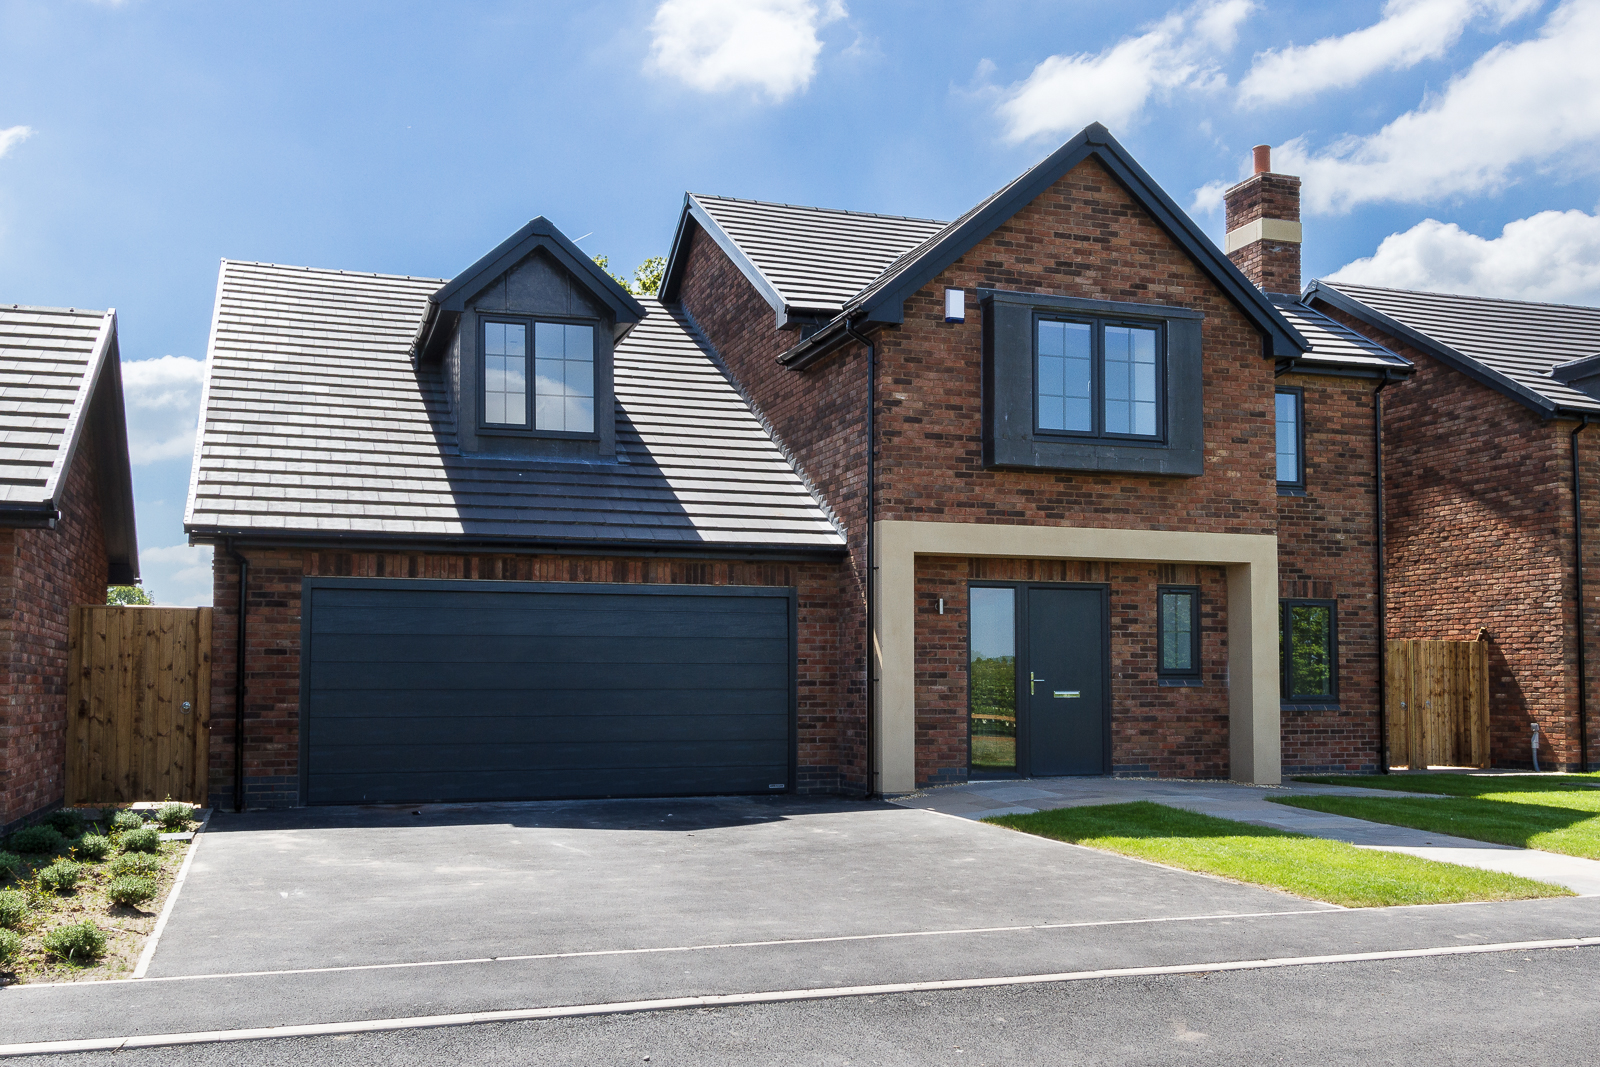 4 Bedroom Detached House For Sale In Audlem Full Brick Brand New Home On Wiring To Garage An Epc Is Not Available This Property